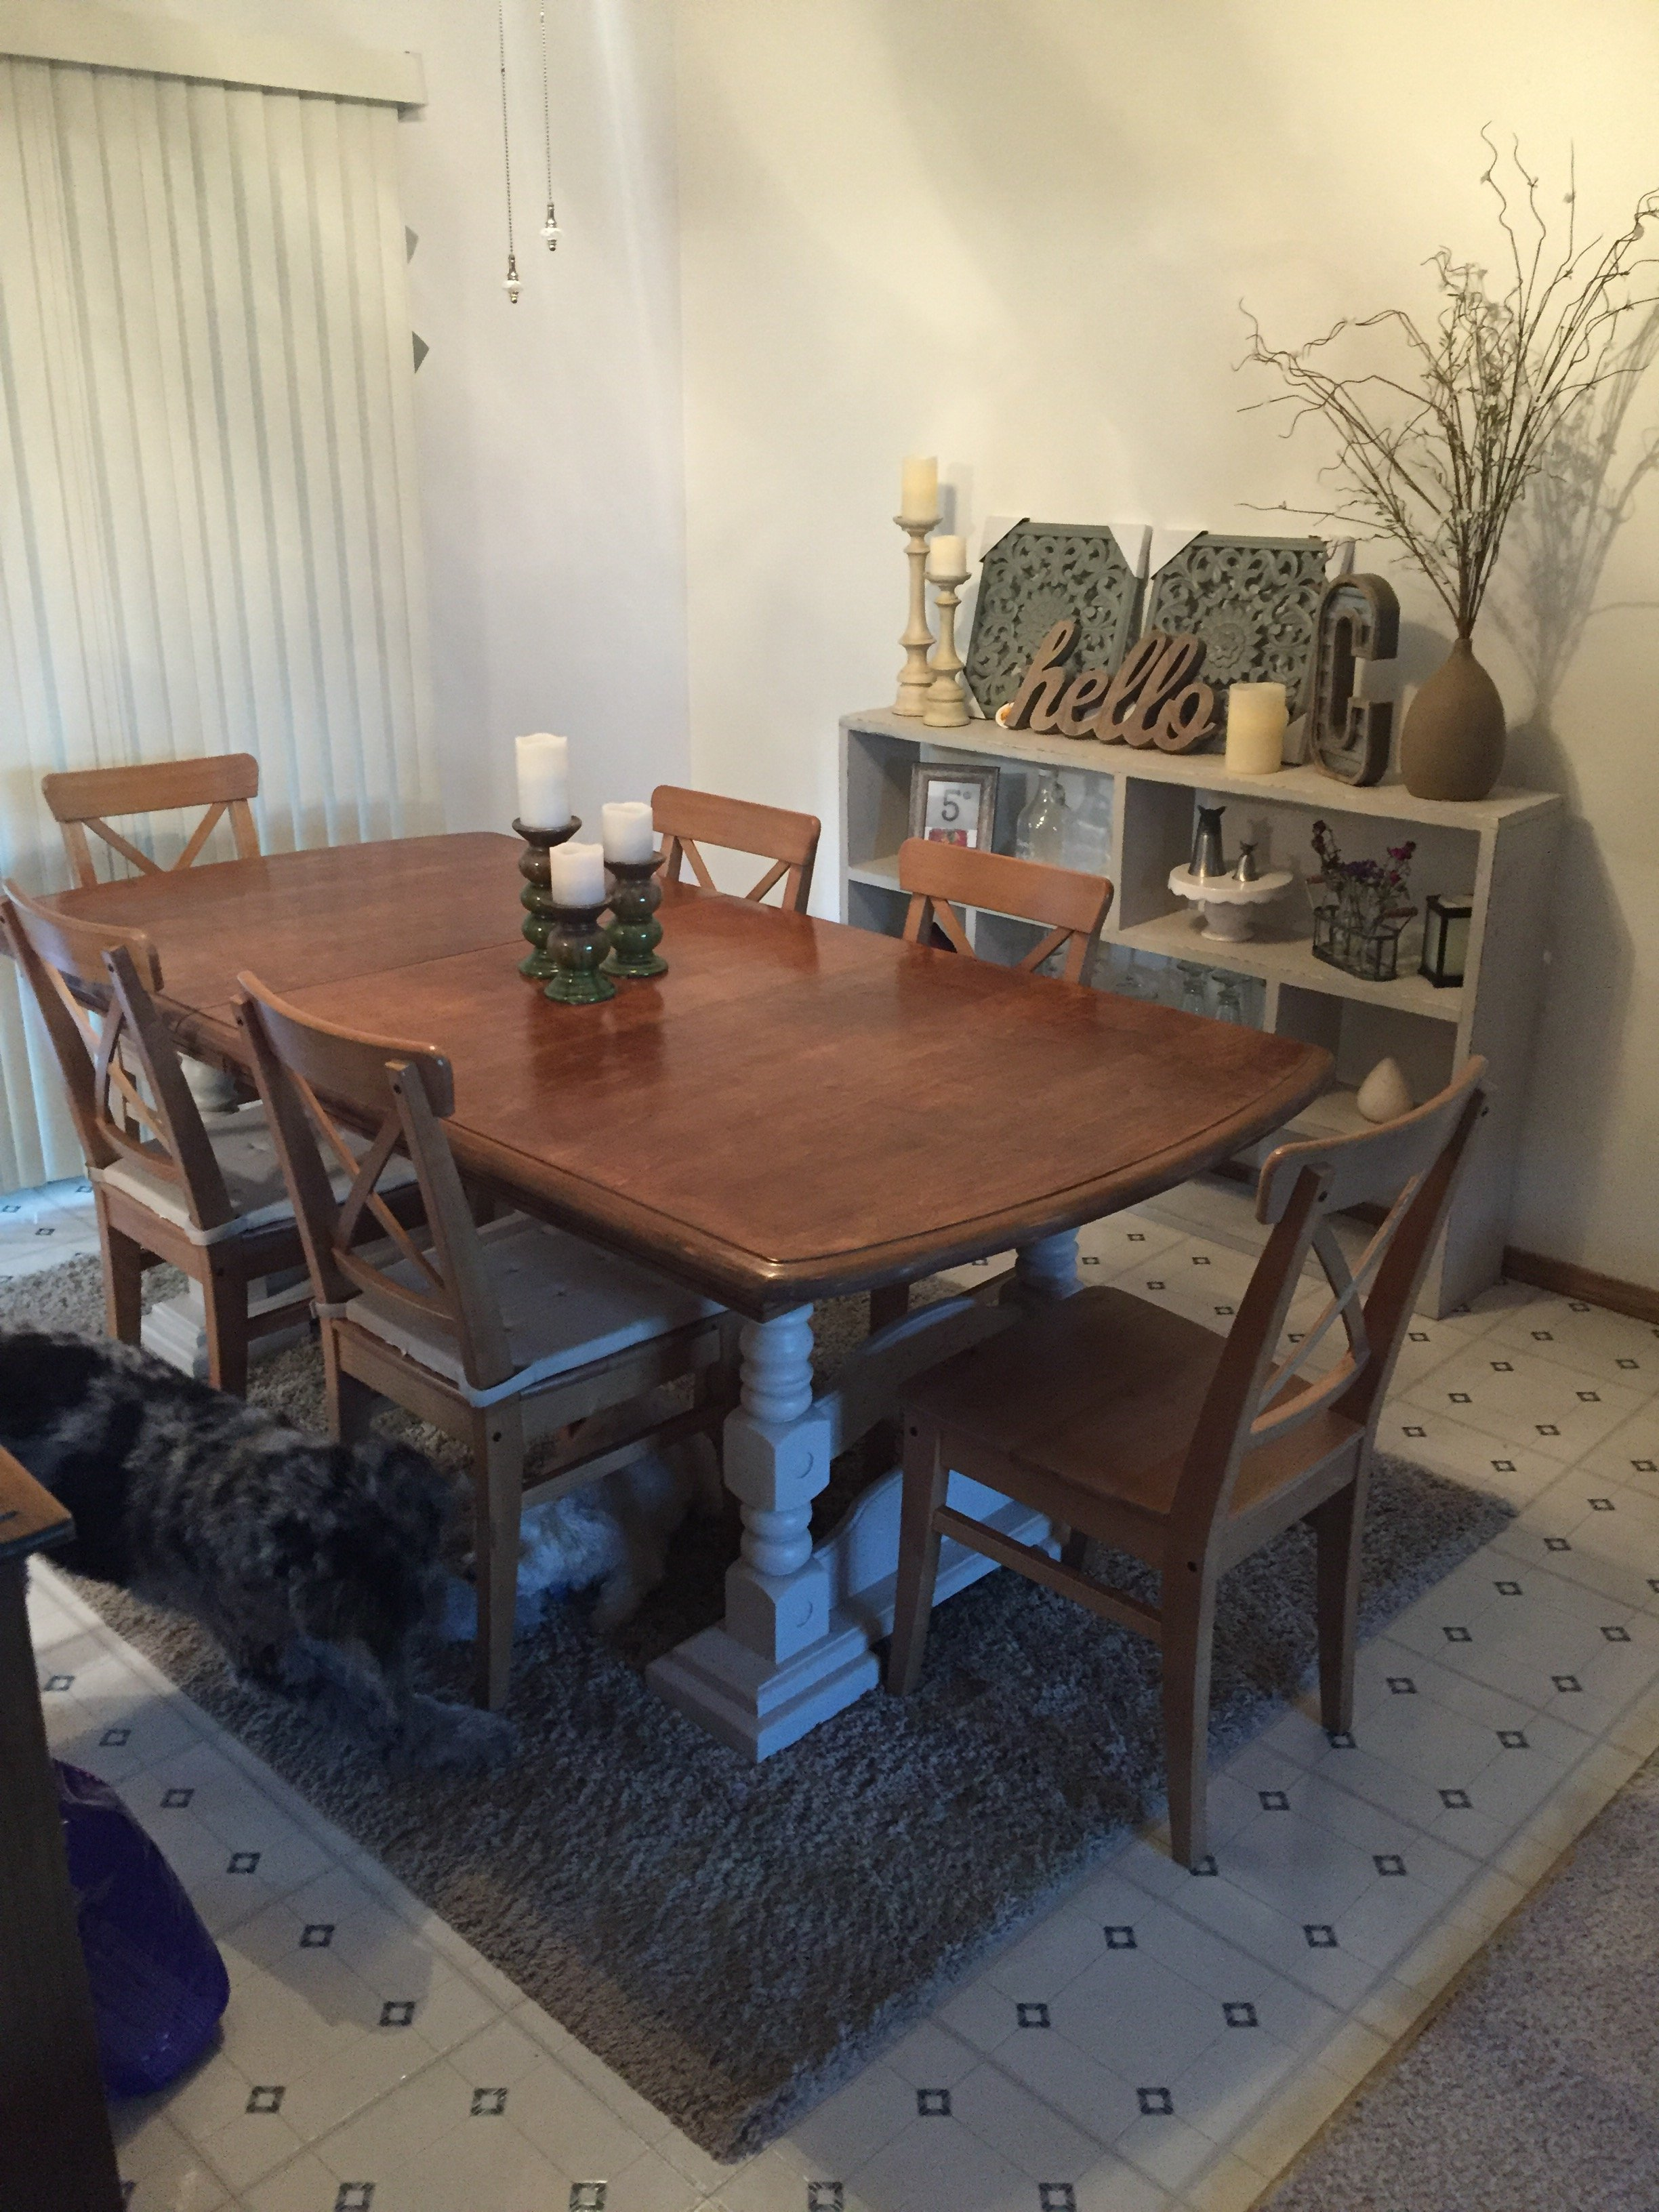 Before and After: Dining Table Redo